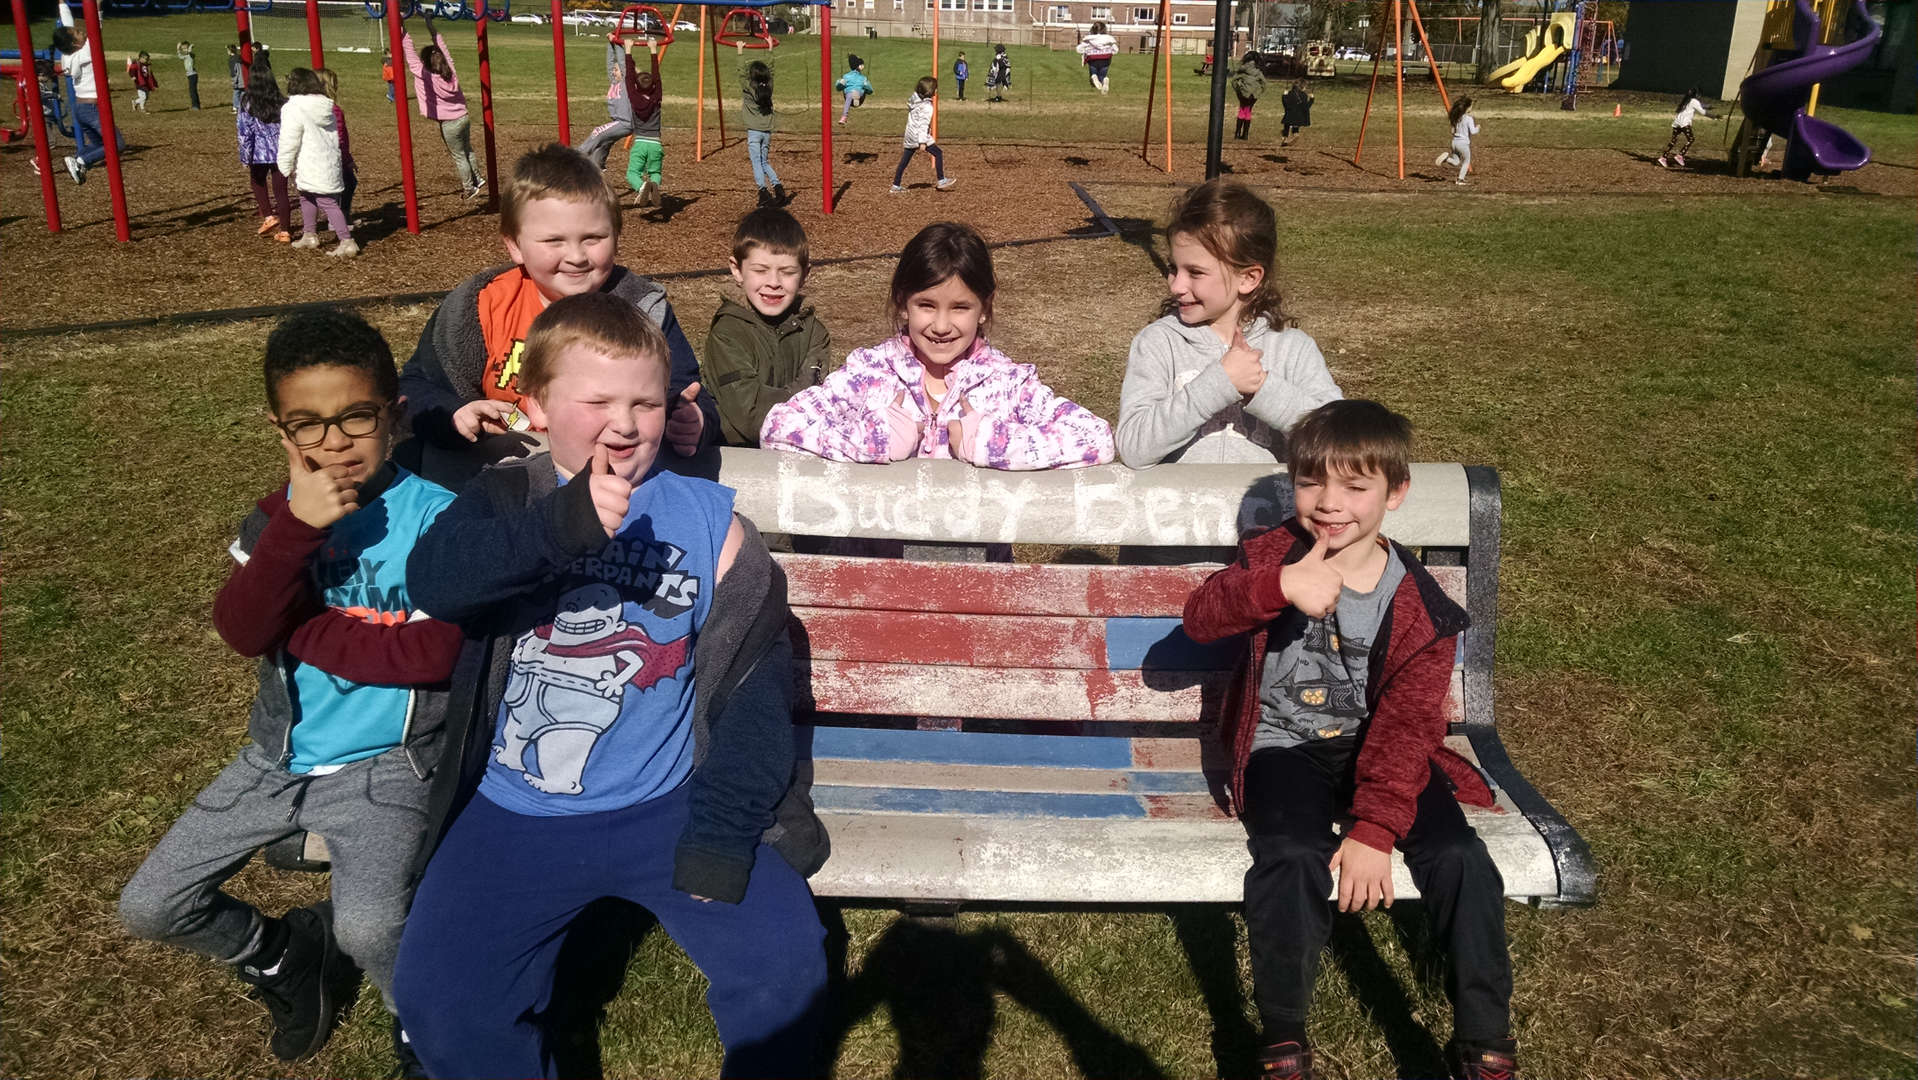 Second Graders showing how Compassion looks on one of our playground buddy benches.